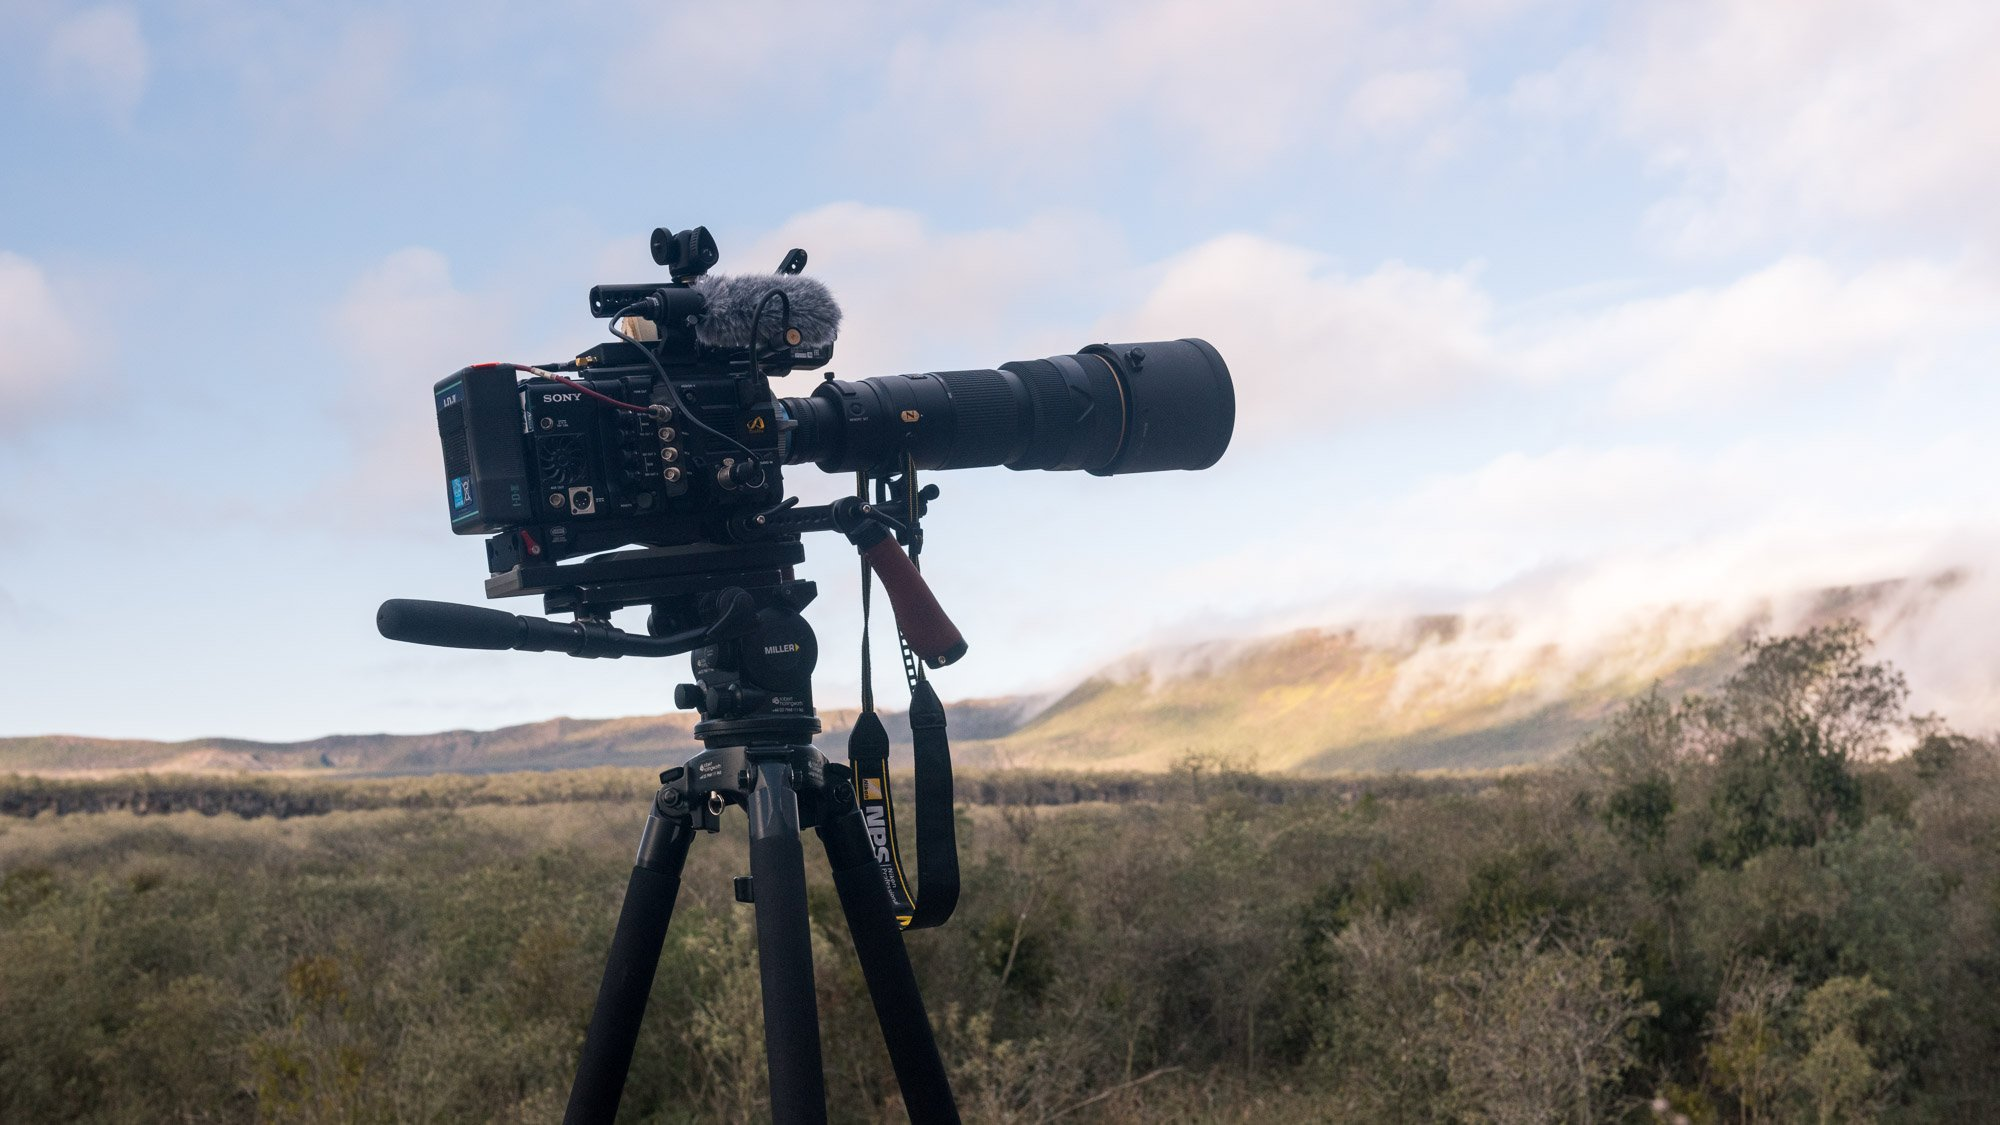 Sony F55 in the Galapagos Islands